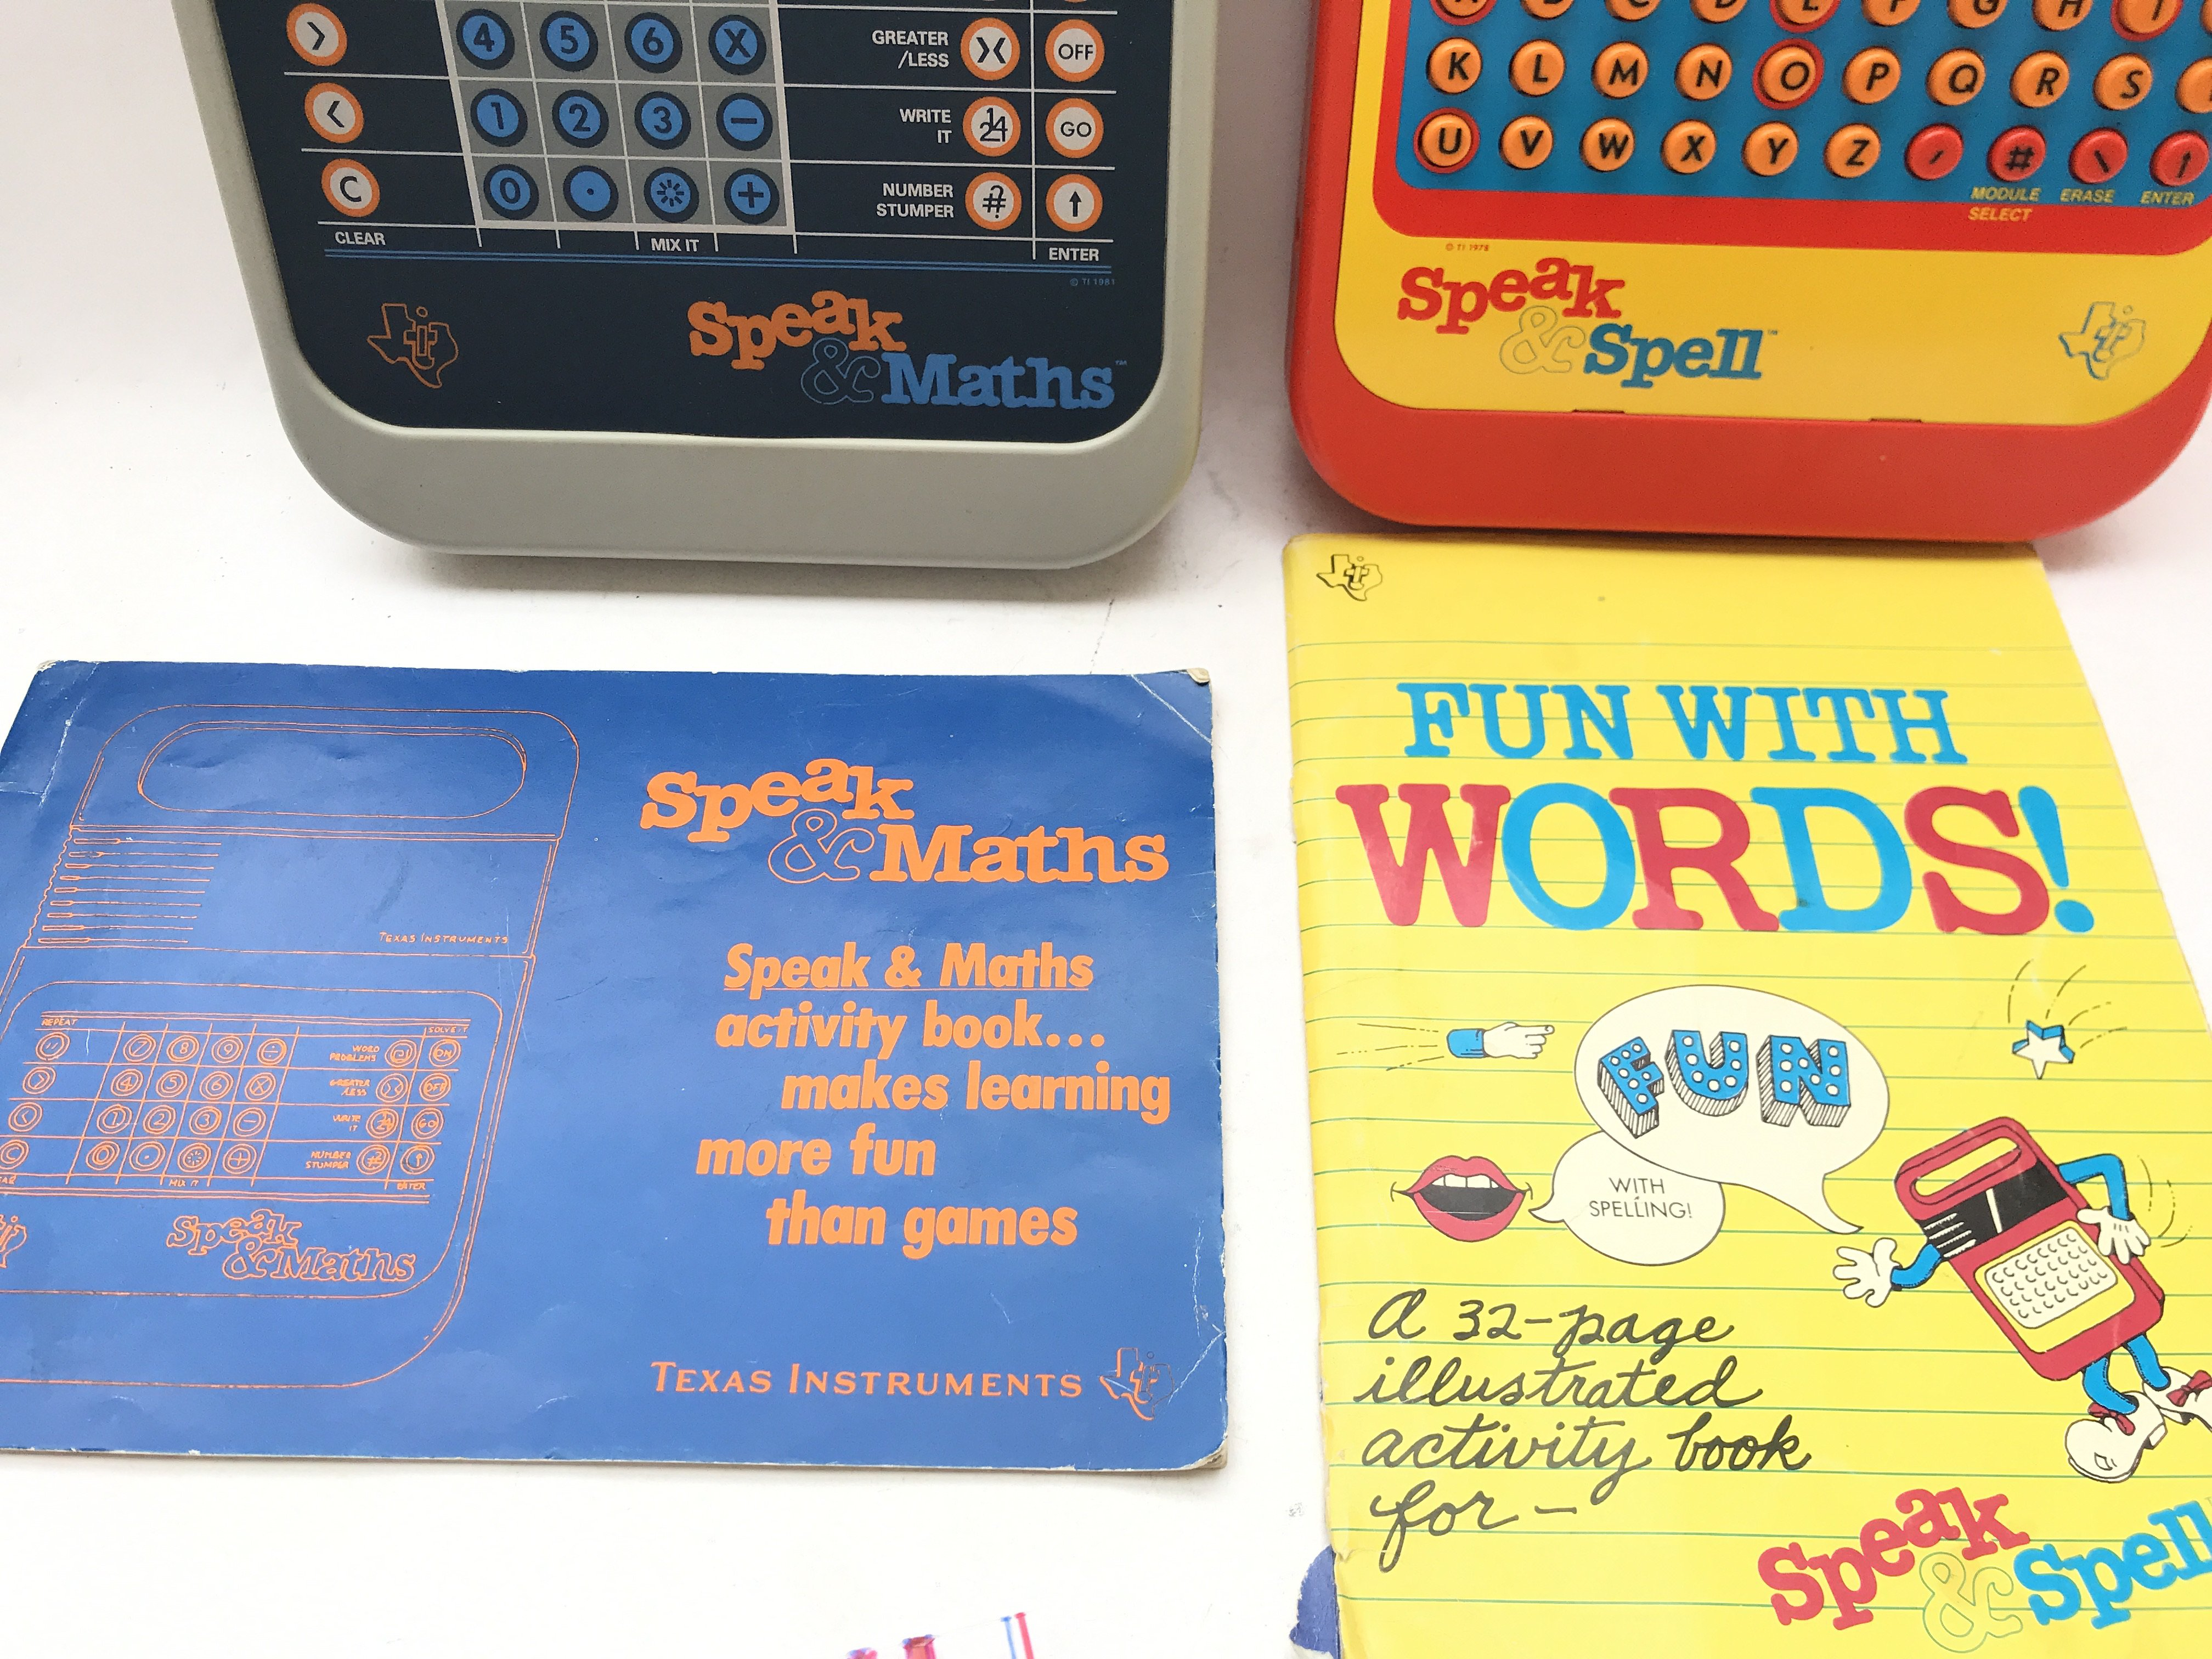 2 X Texas Instruments. A Speak and Maths and a Spe - Image 3 of 3